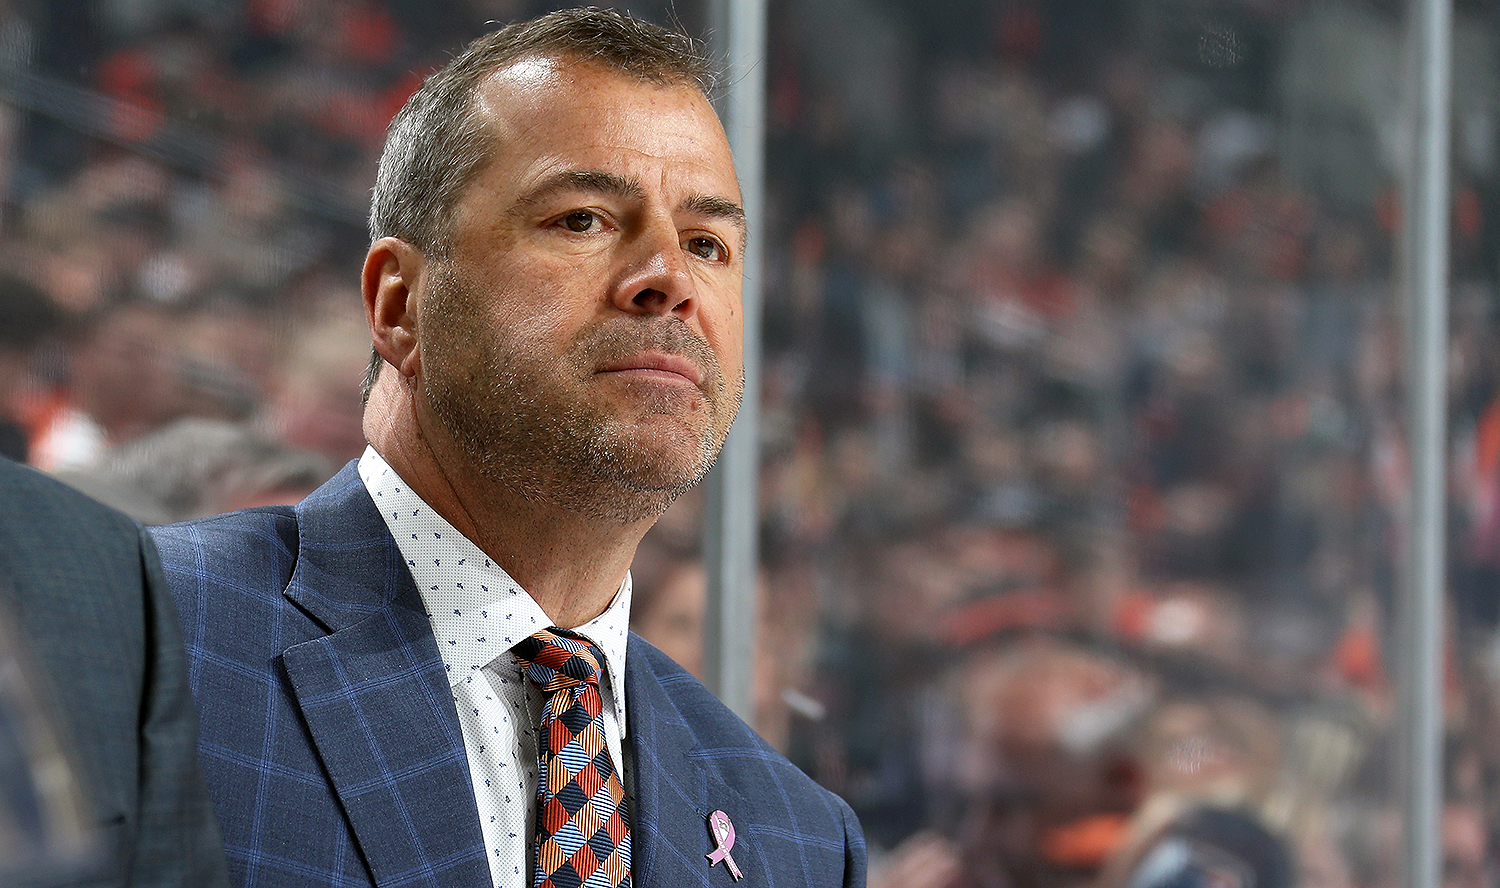 NHL awards: Alain Vigneault finishes as runner-up to Bruce Cassidy for 2019-20 Jack Adams honor